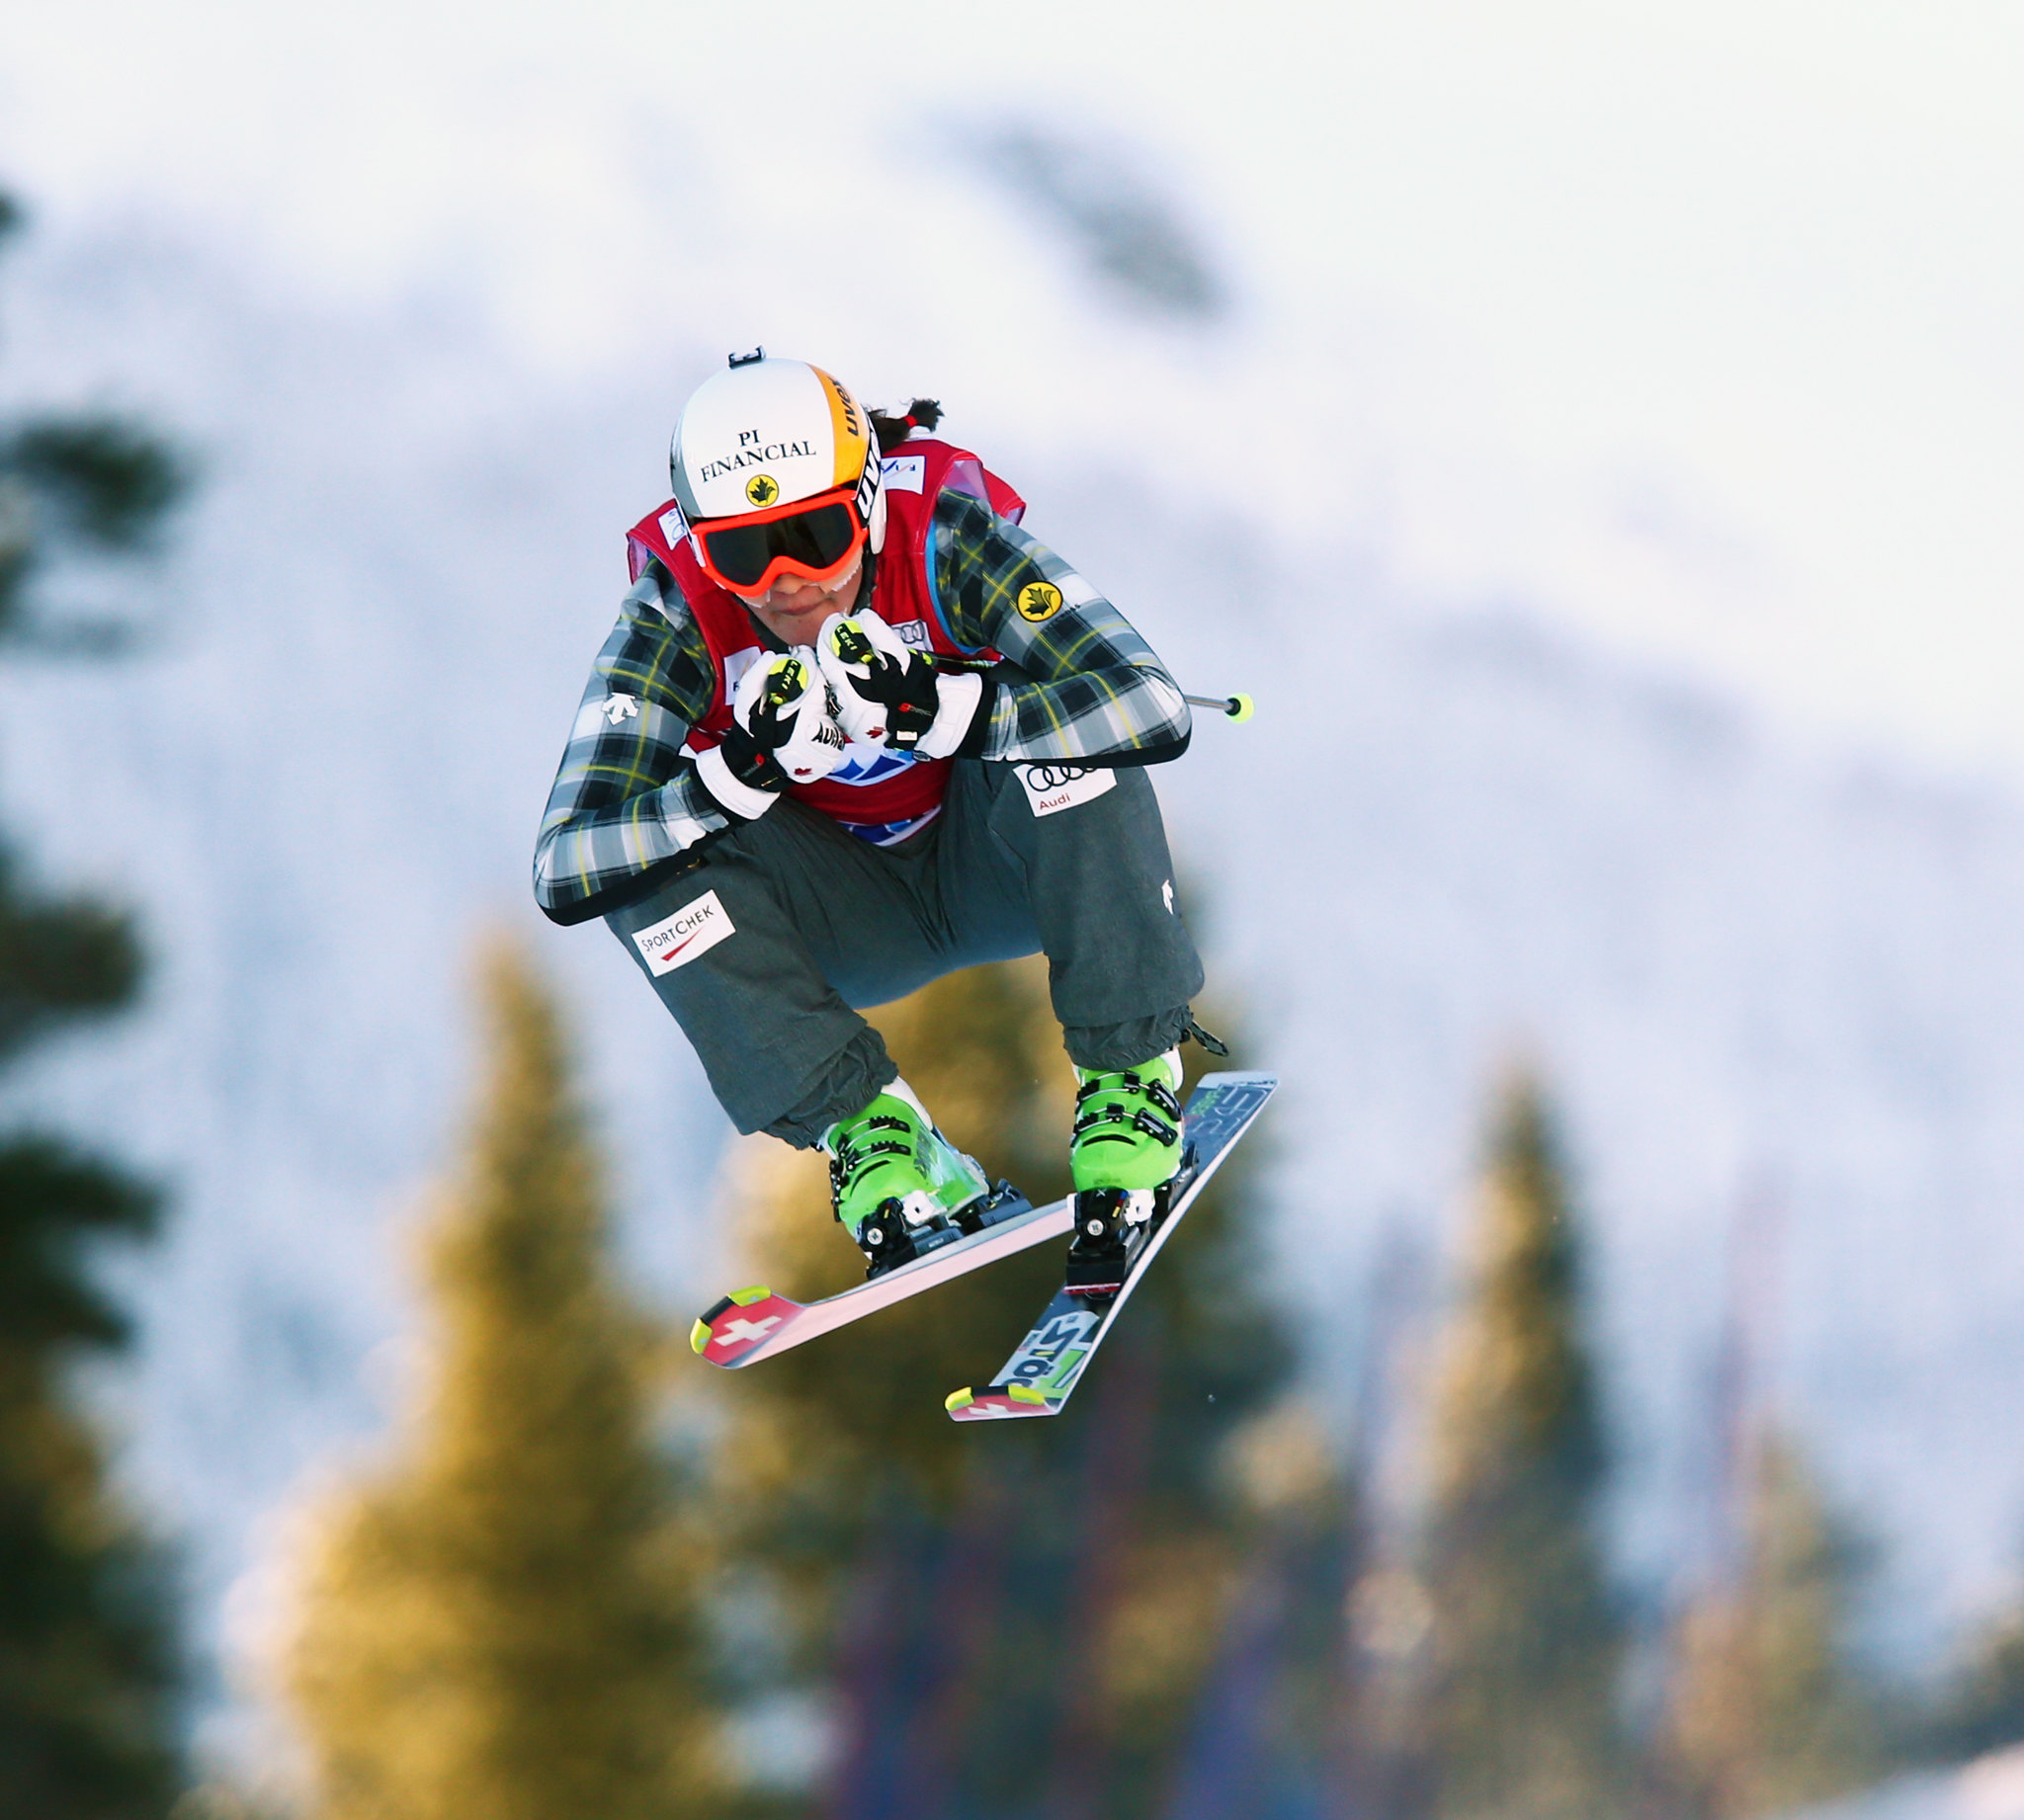 Marielle Thompson soars to the top of the podium in Nakiska, CAN at the FIS Ski Cross World Cup